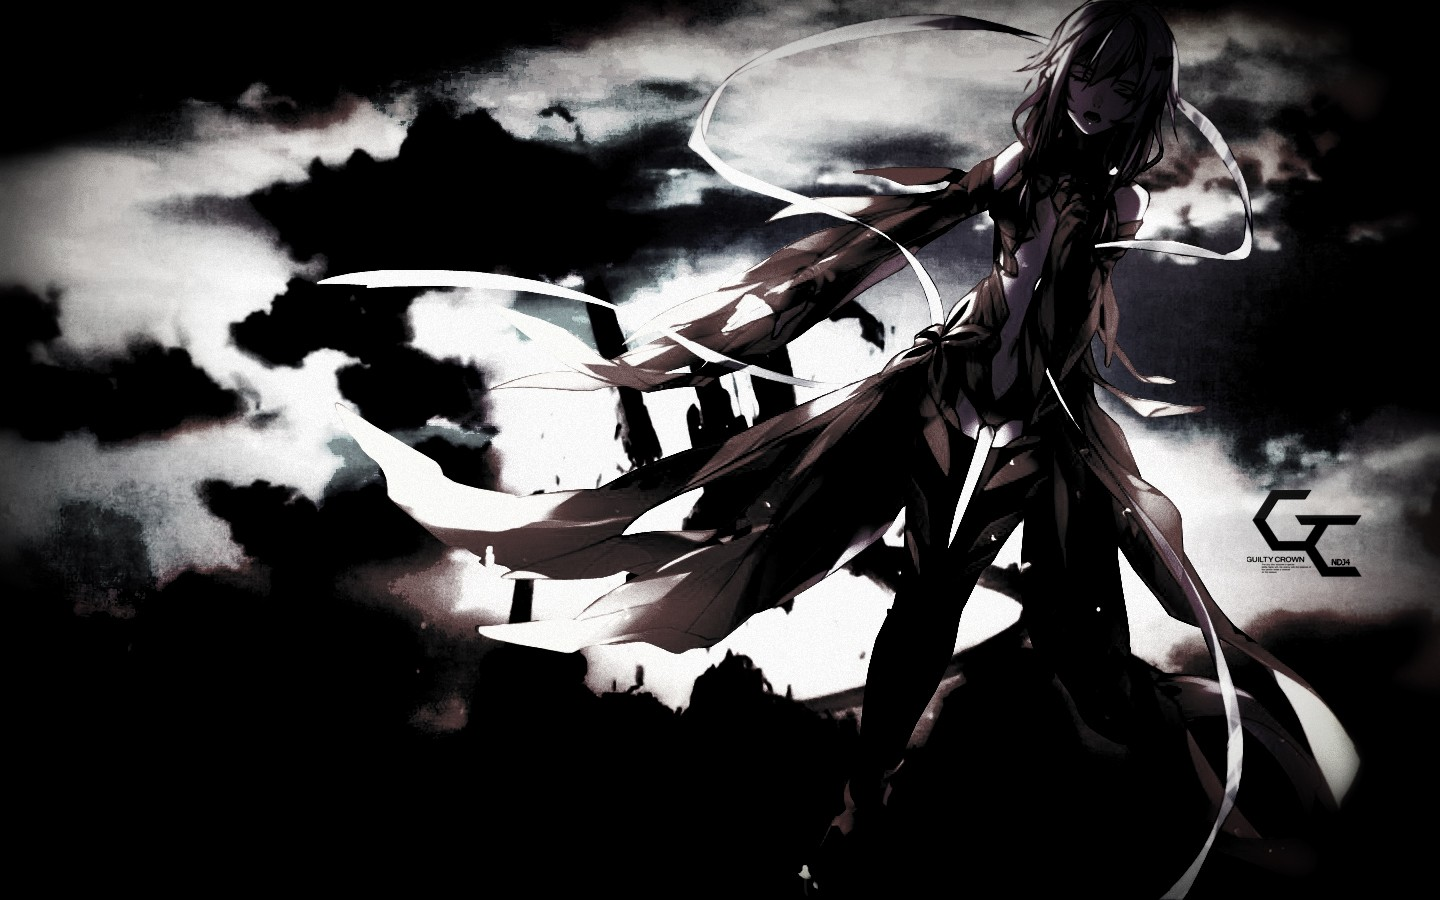 anime wallpaper dark science - photo #23